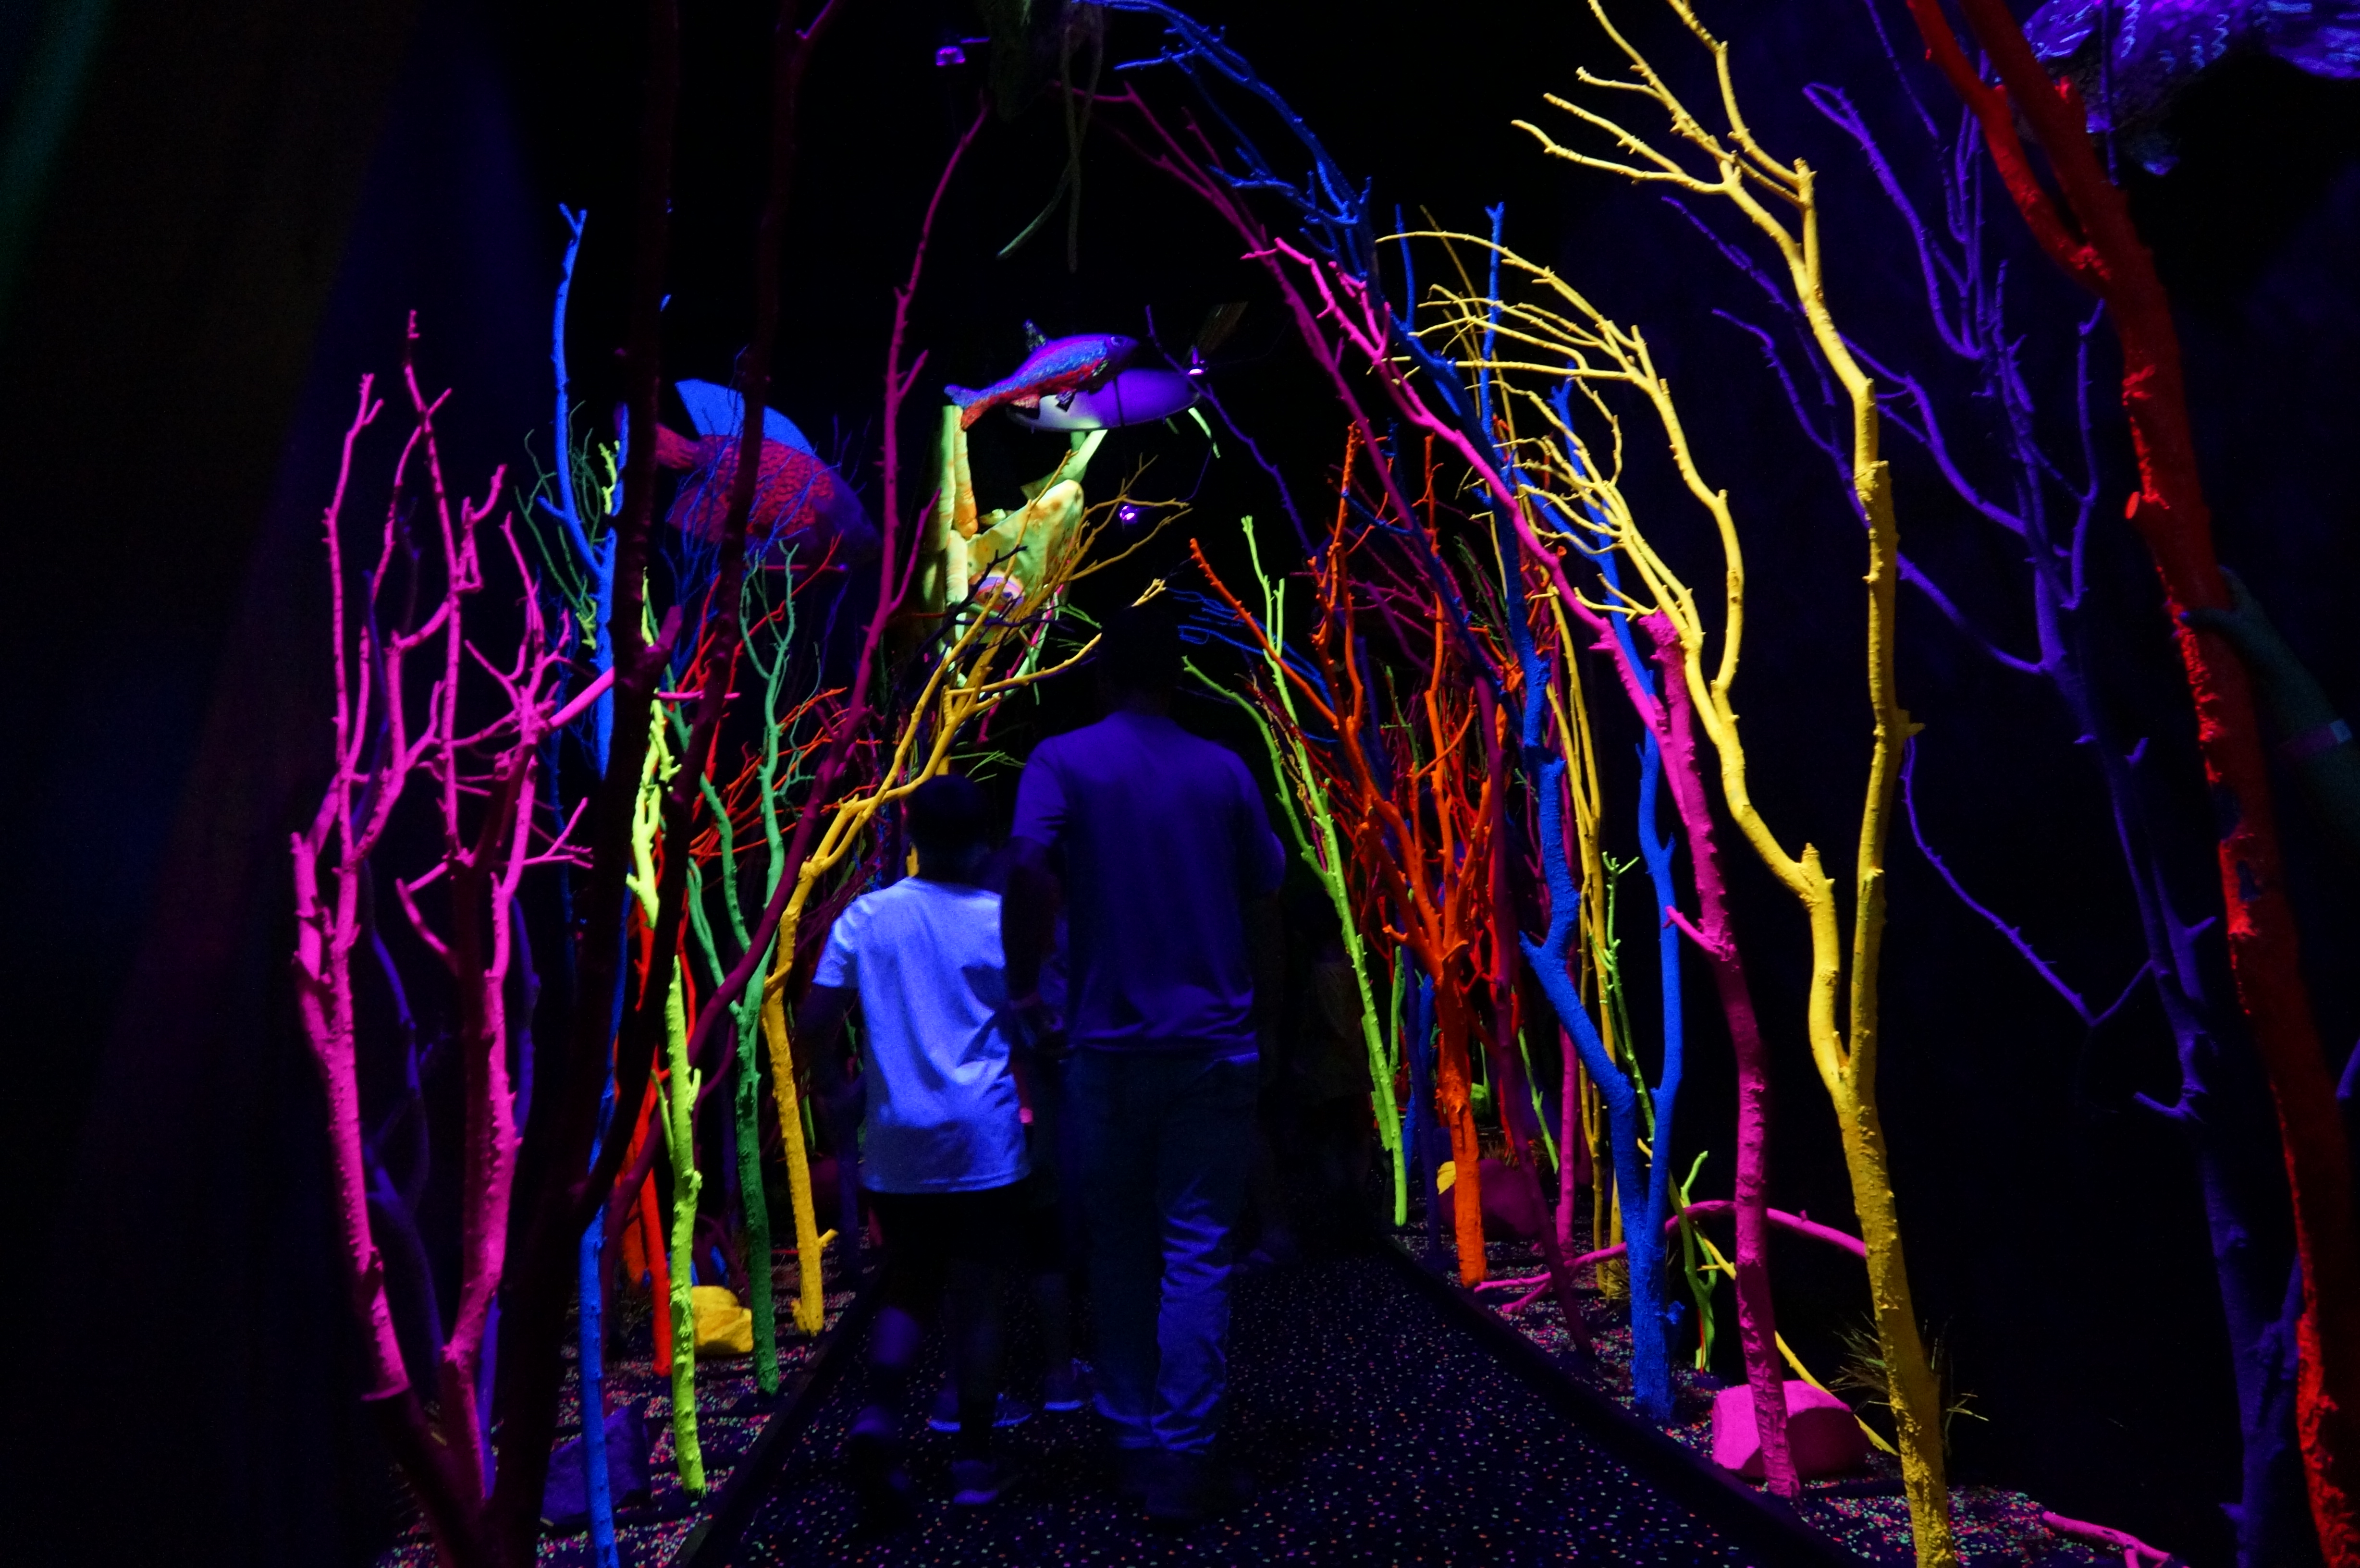 Visitors walk through an iconic section of Meow Wolf's Santa Fe installation on July 2, 2018.